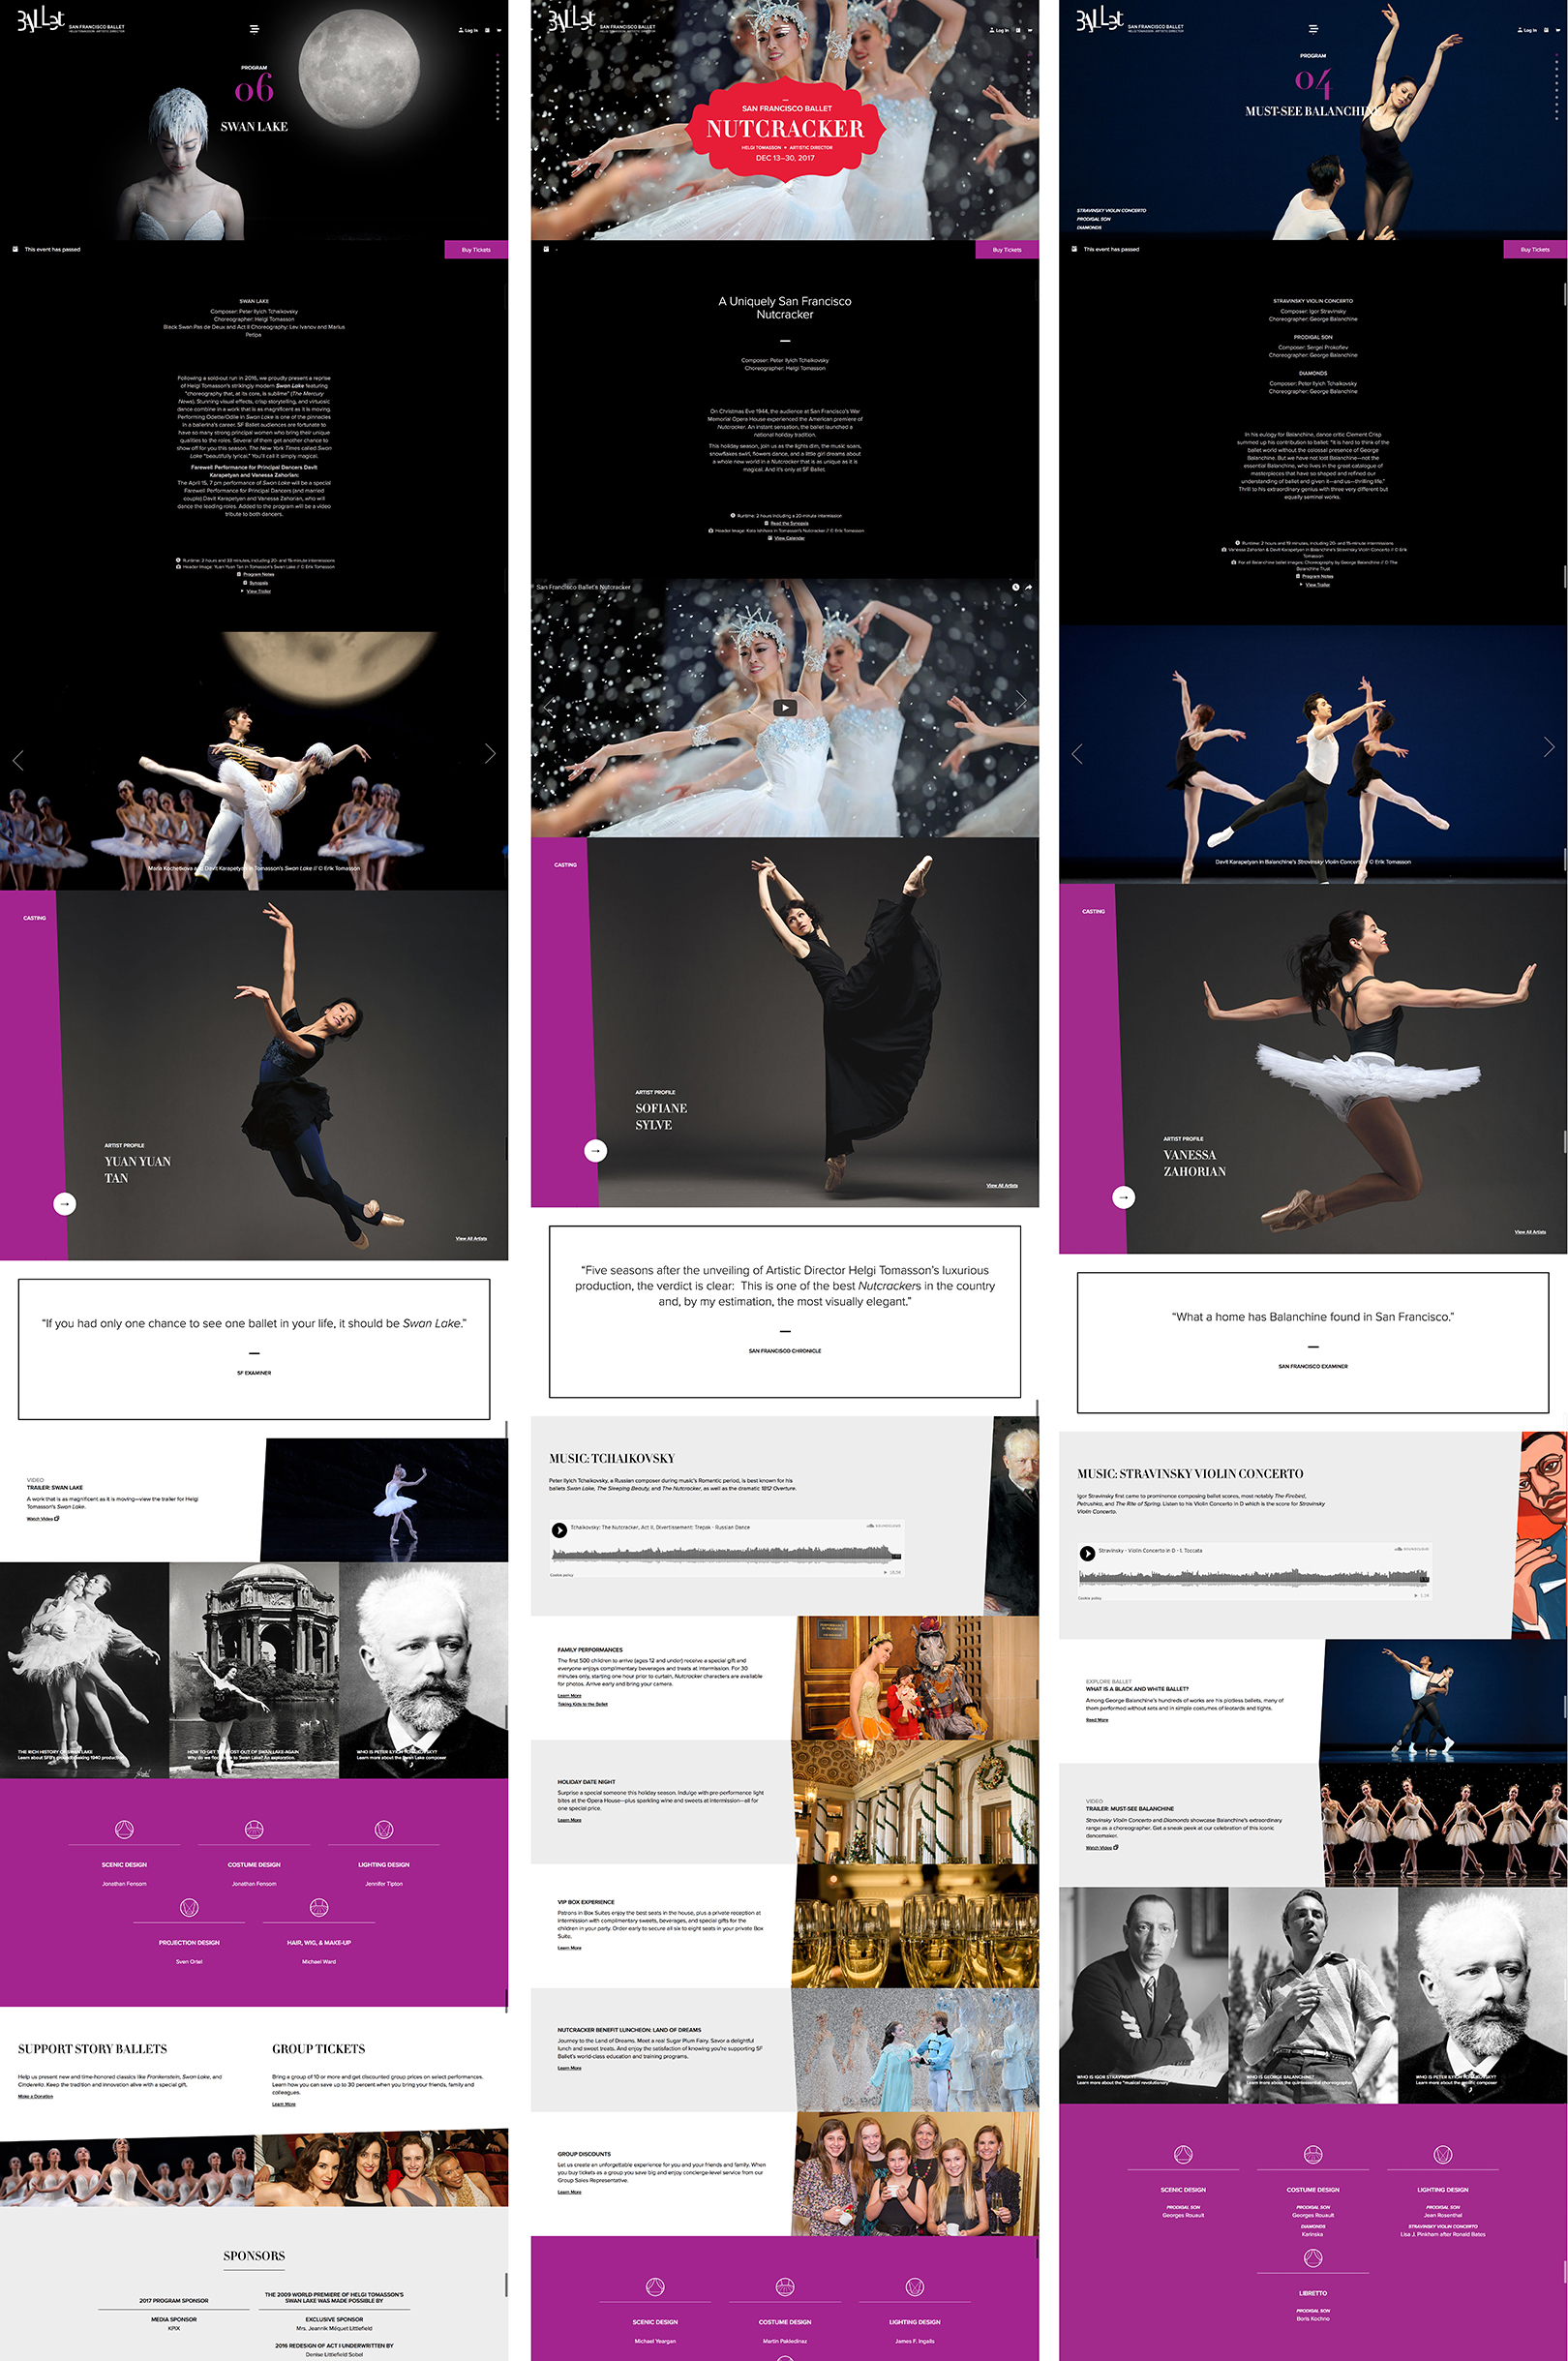 Modules used by SF Ballet to create performance detail pages, providing deeper context & driving ticket purchases